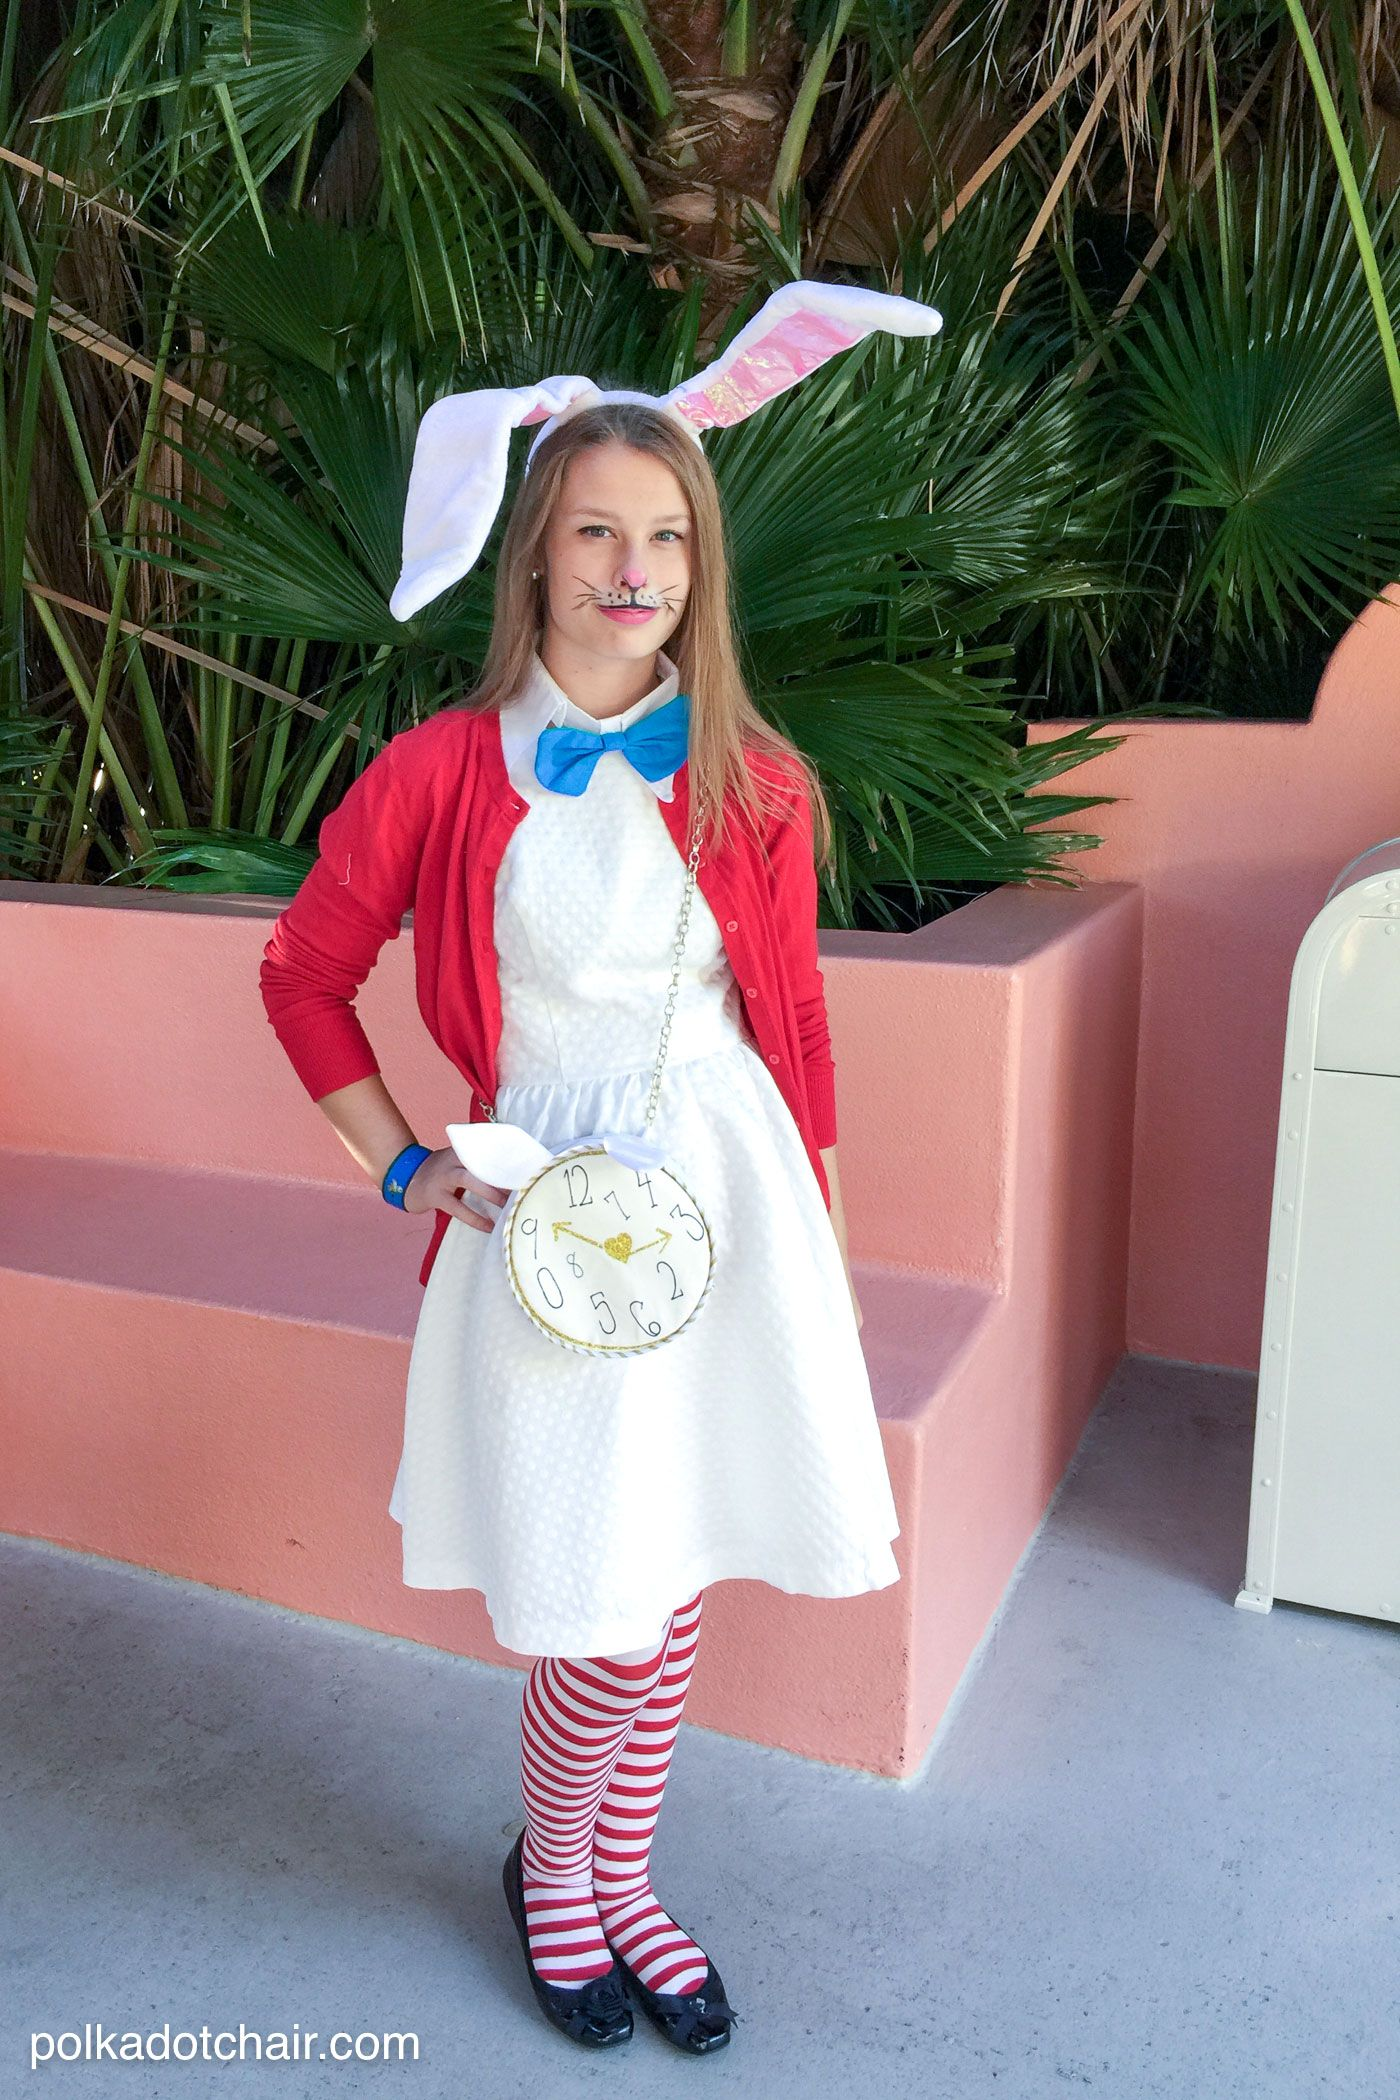 No Sew Family Alice In Wonderland Costume Ideas Polka Dot Chair Disney Costumes Diy Alice In Wonderland Costume Easy Disney Costumes